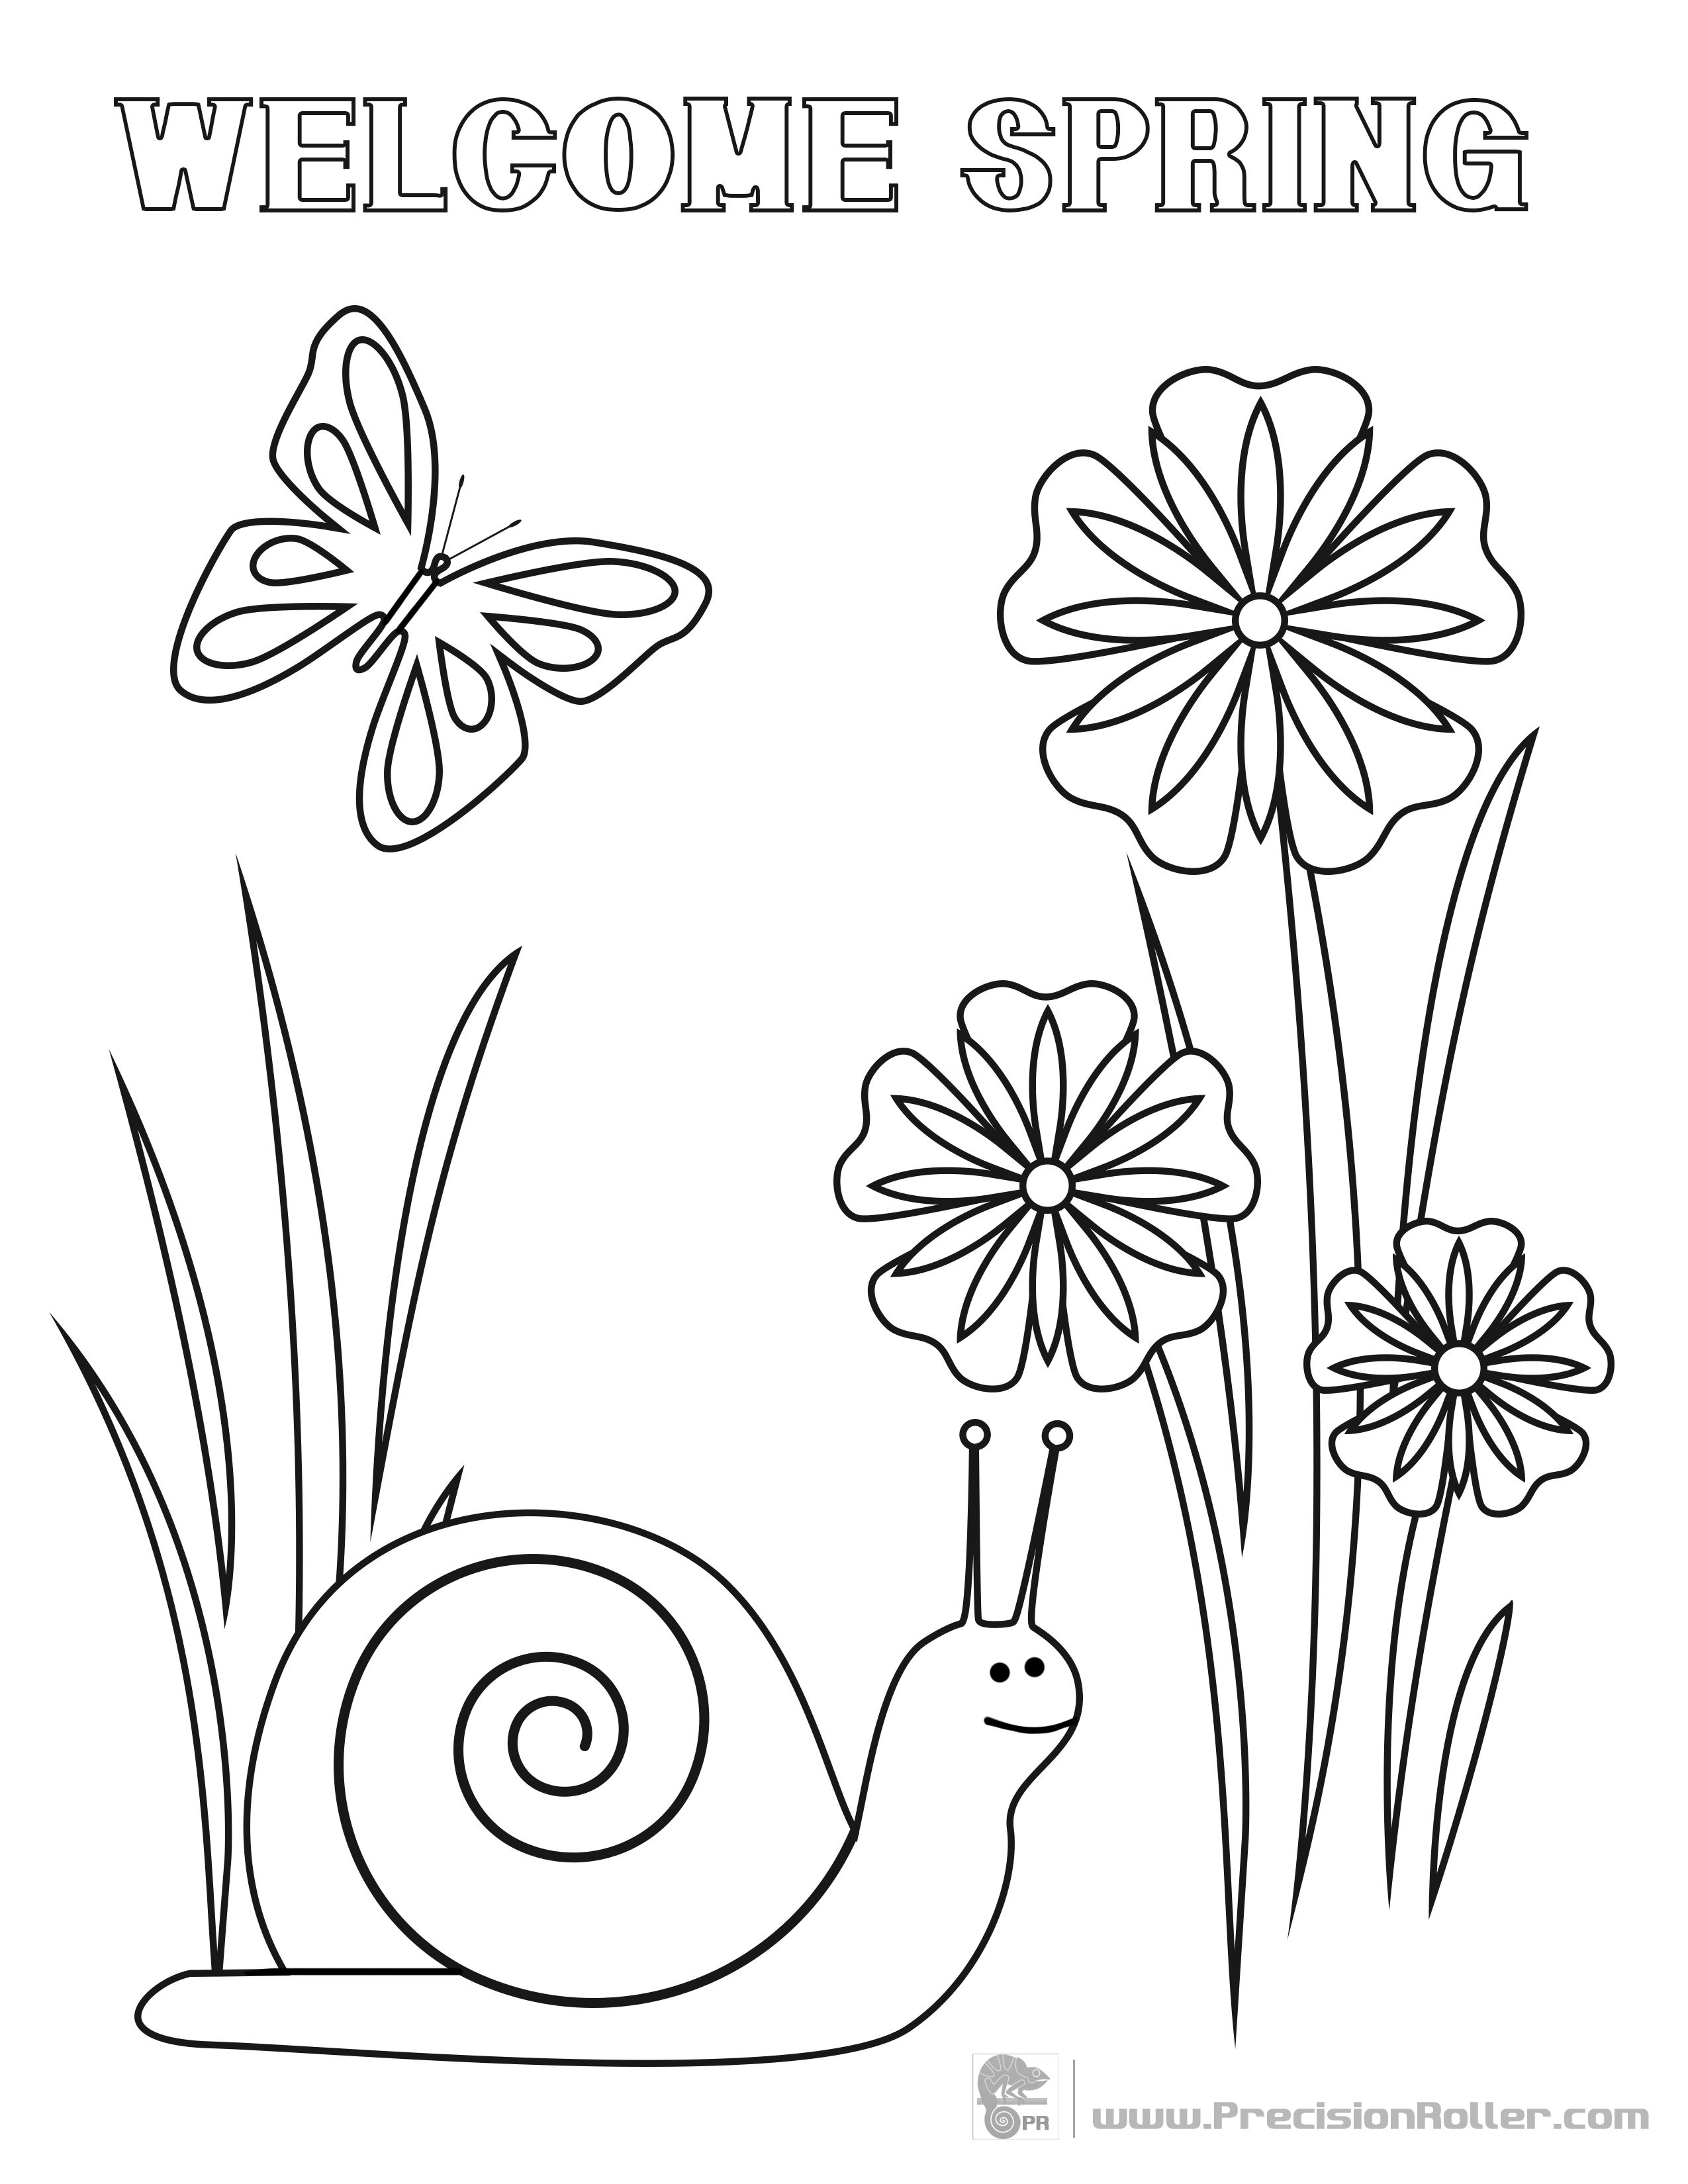 Fun spring coloring pages - Spring Coloring Sheet Save And Print